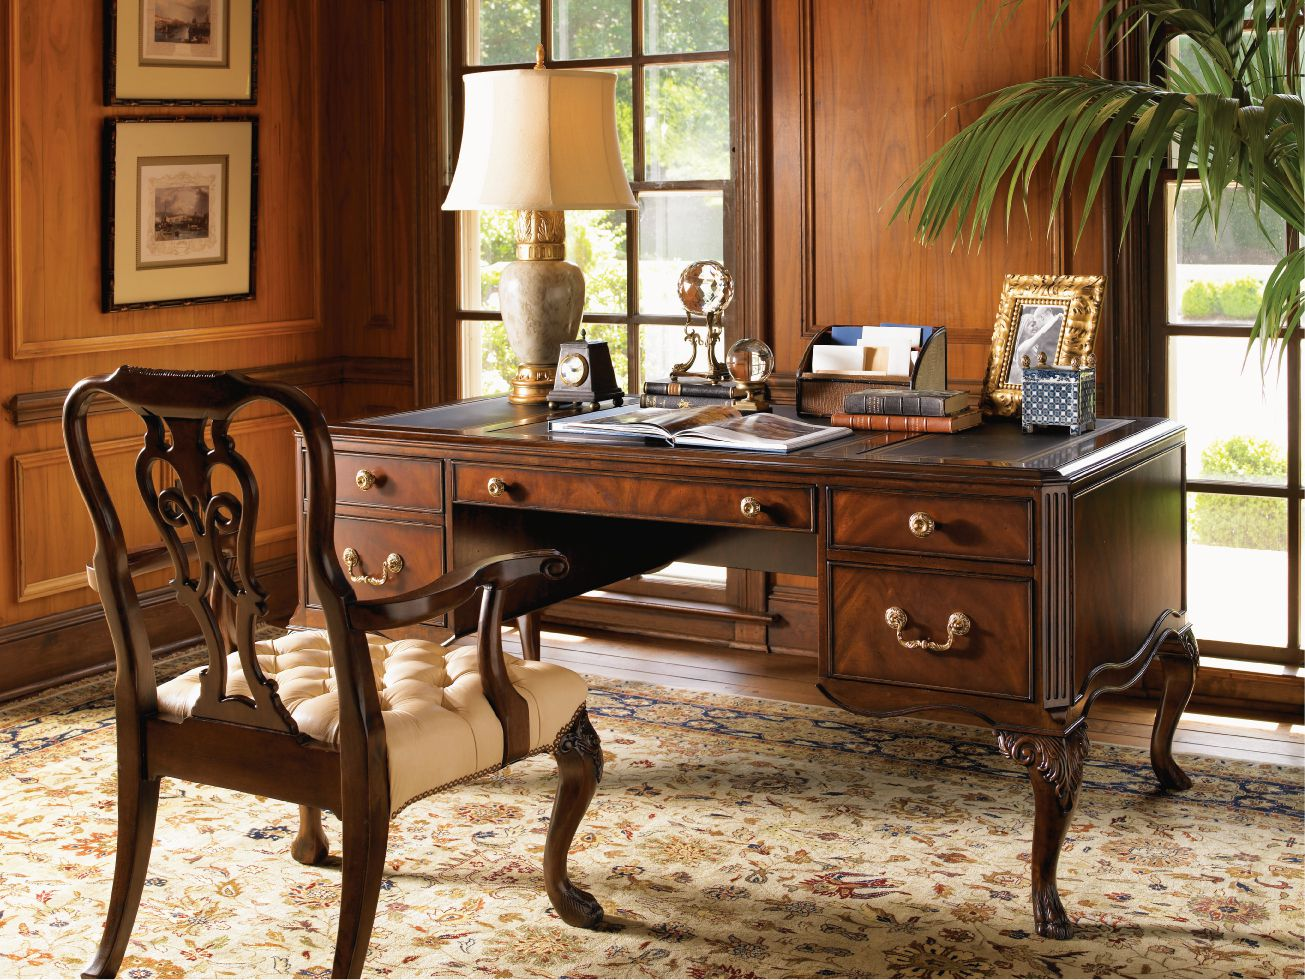 Marvelous Room With Elegant Wood Office Desk also Table Lamp and Chair